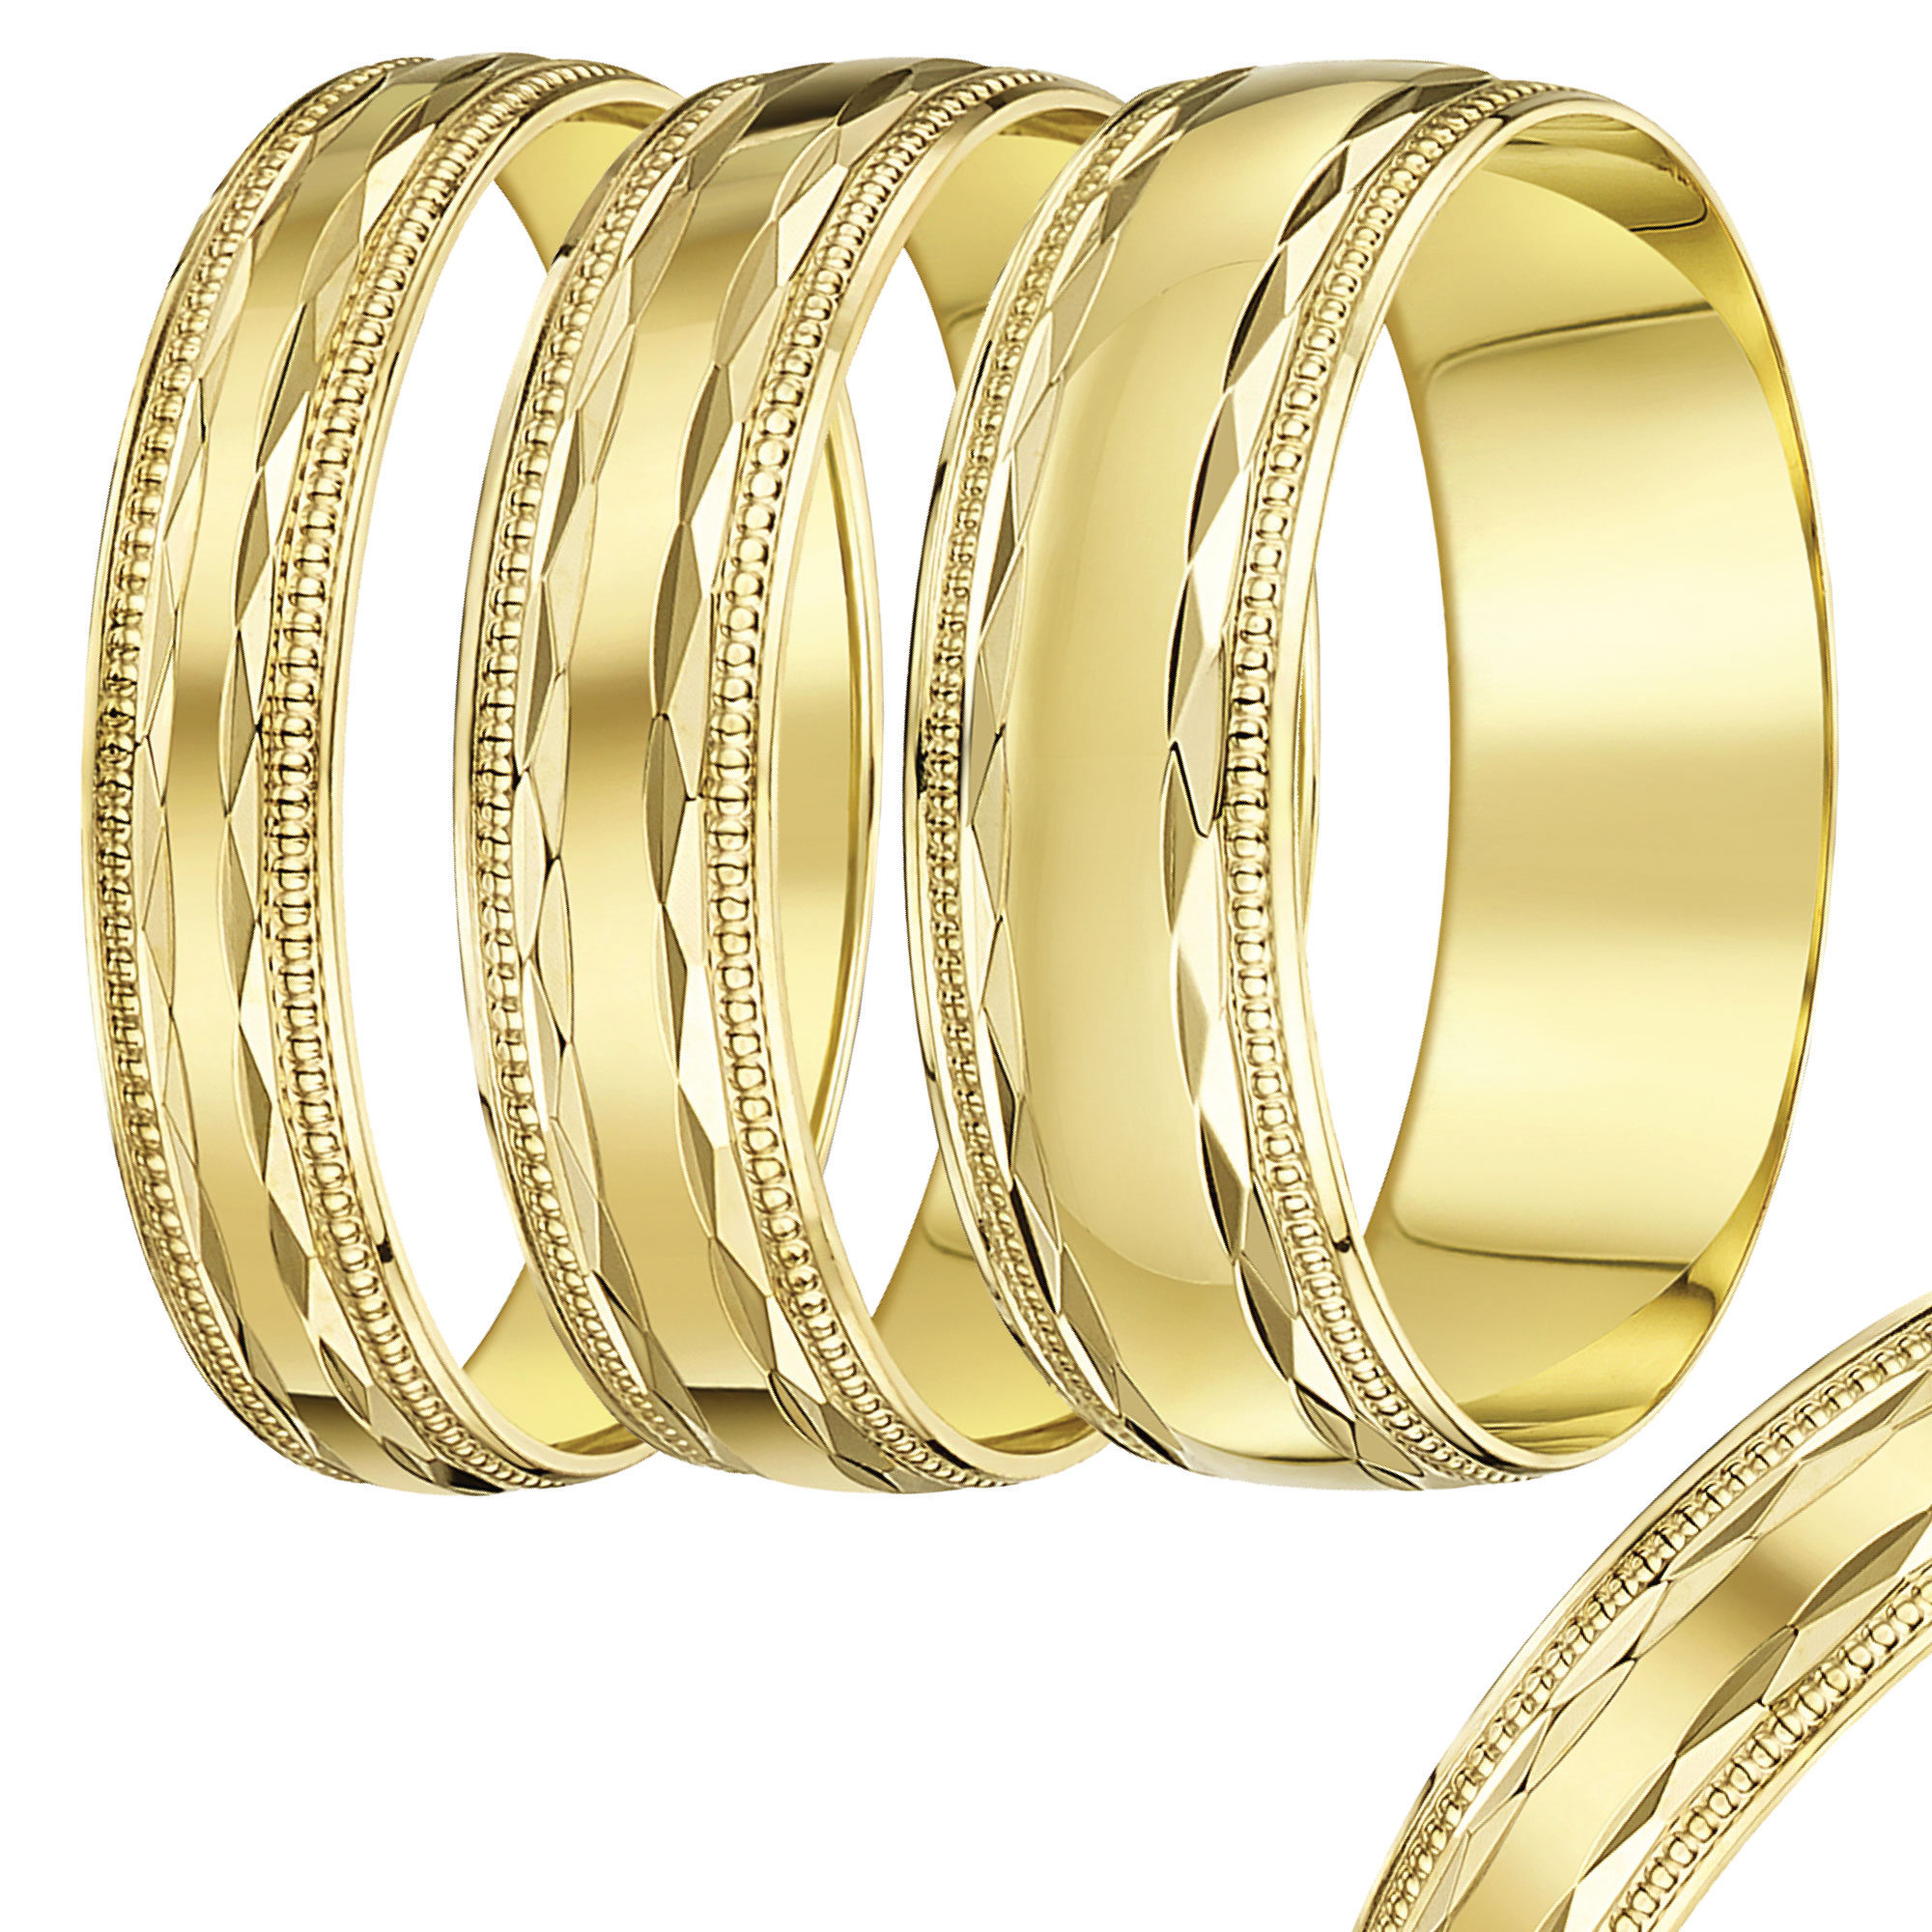 4mm-8mm Yellow Gold Beaded Edge Band